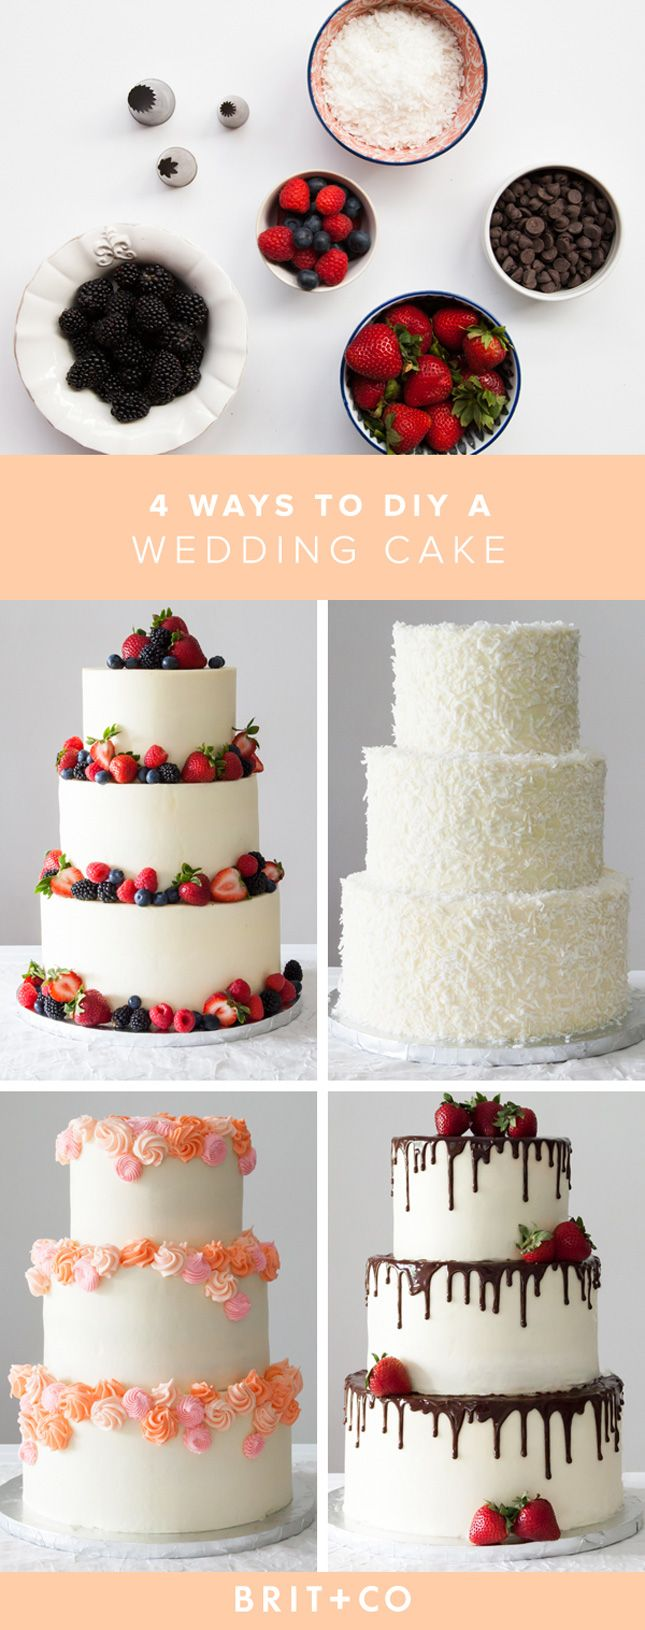 Discover Four Easy Ways To Decorate Your Own Wedding Cake